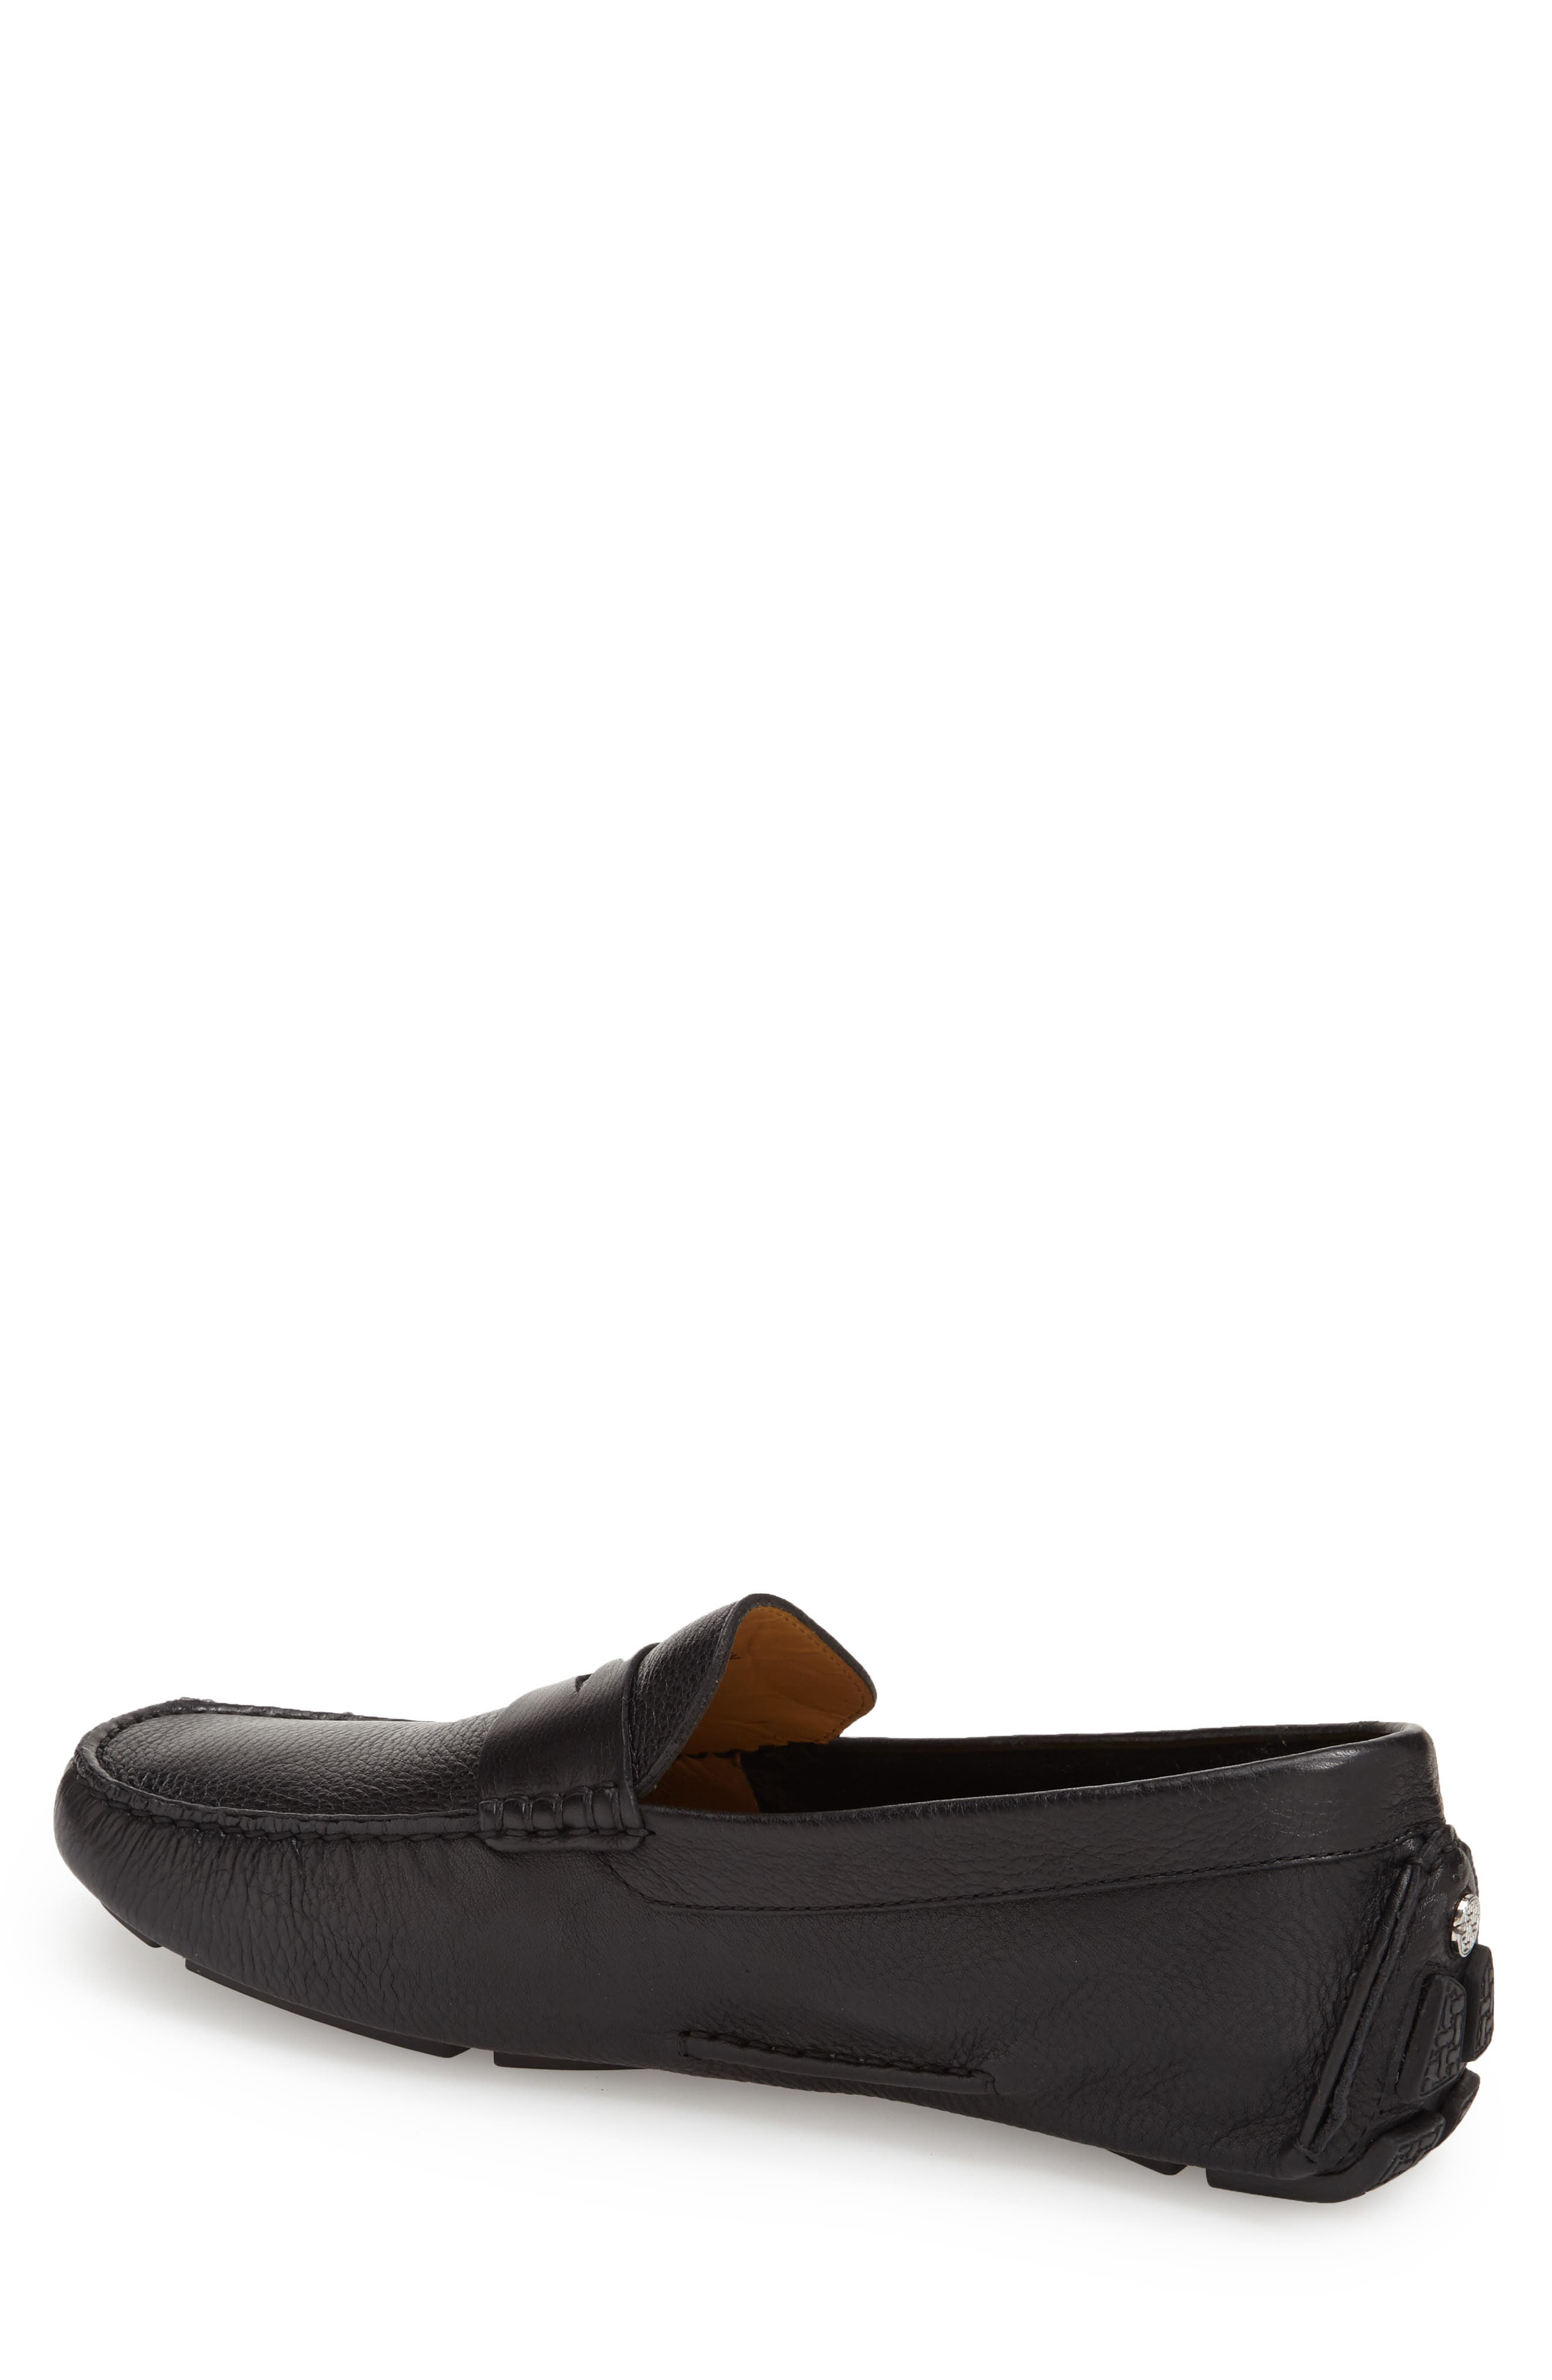 COLE HAAN, 'Howland' Penny Loafer, Alternate thumbnail 10, color, BLACK TUMBLED